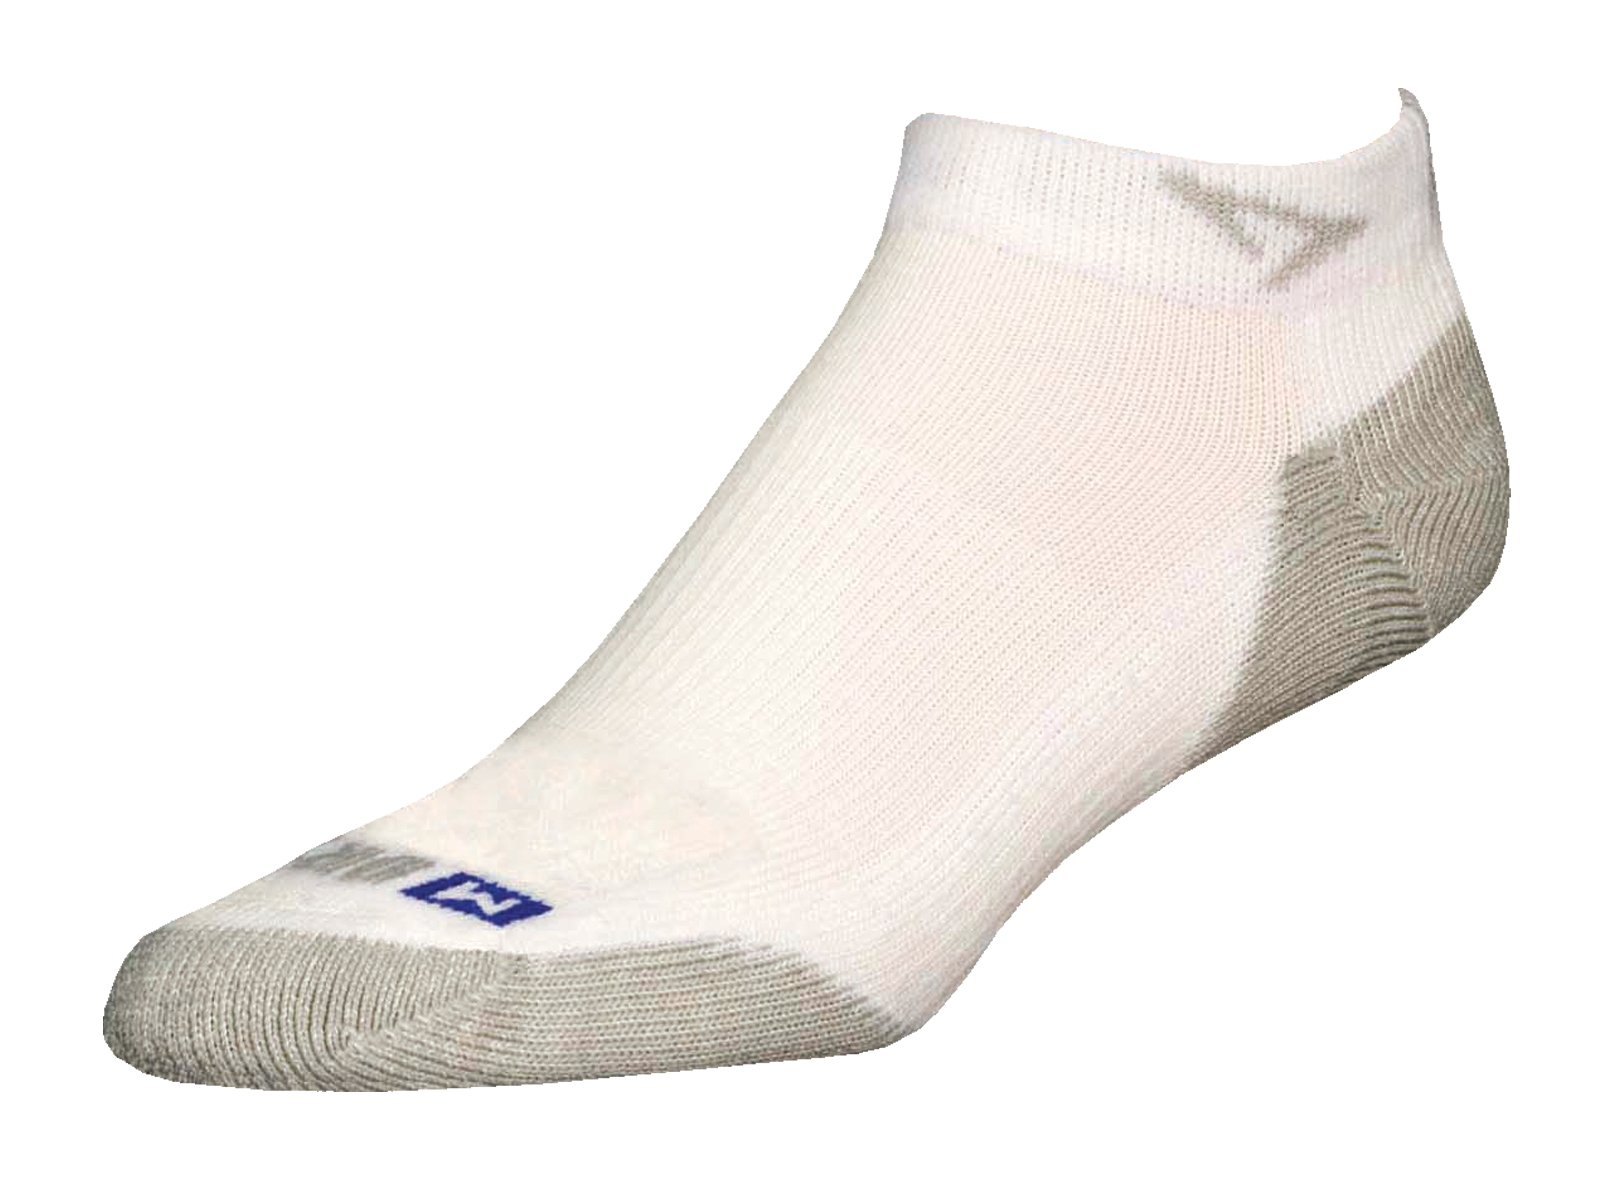 Drymax Run Mini Crew Socks, White/Grey, XX-Large (M11-13) by Drymax